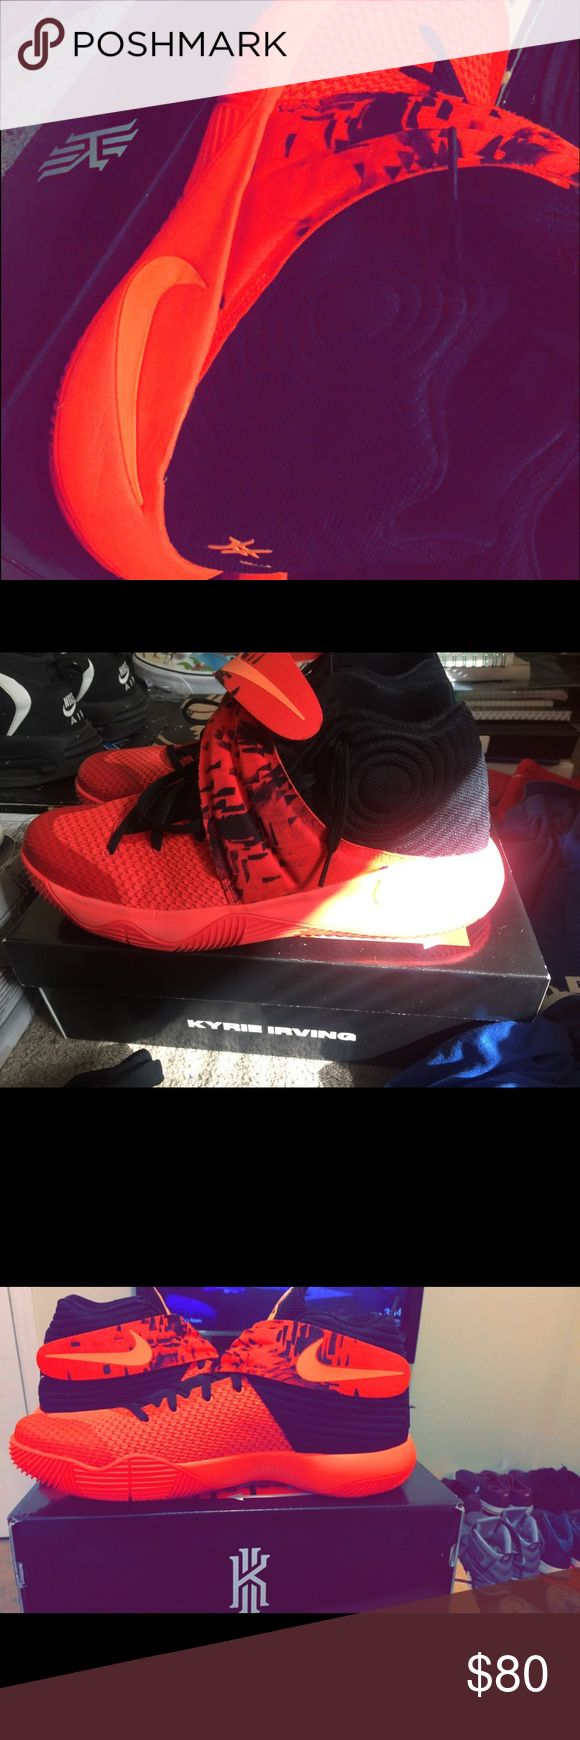 """Nike Kyrie 2 """"Inferno"""" Purchased recently but were a half size too small selling for 40% Off (Original Price: $120) Nike Shoes Sneakers"""